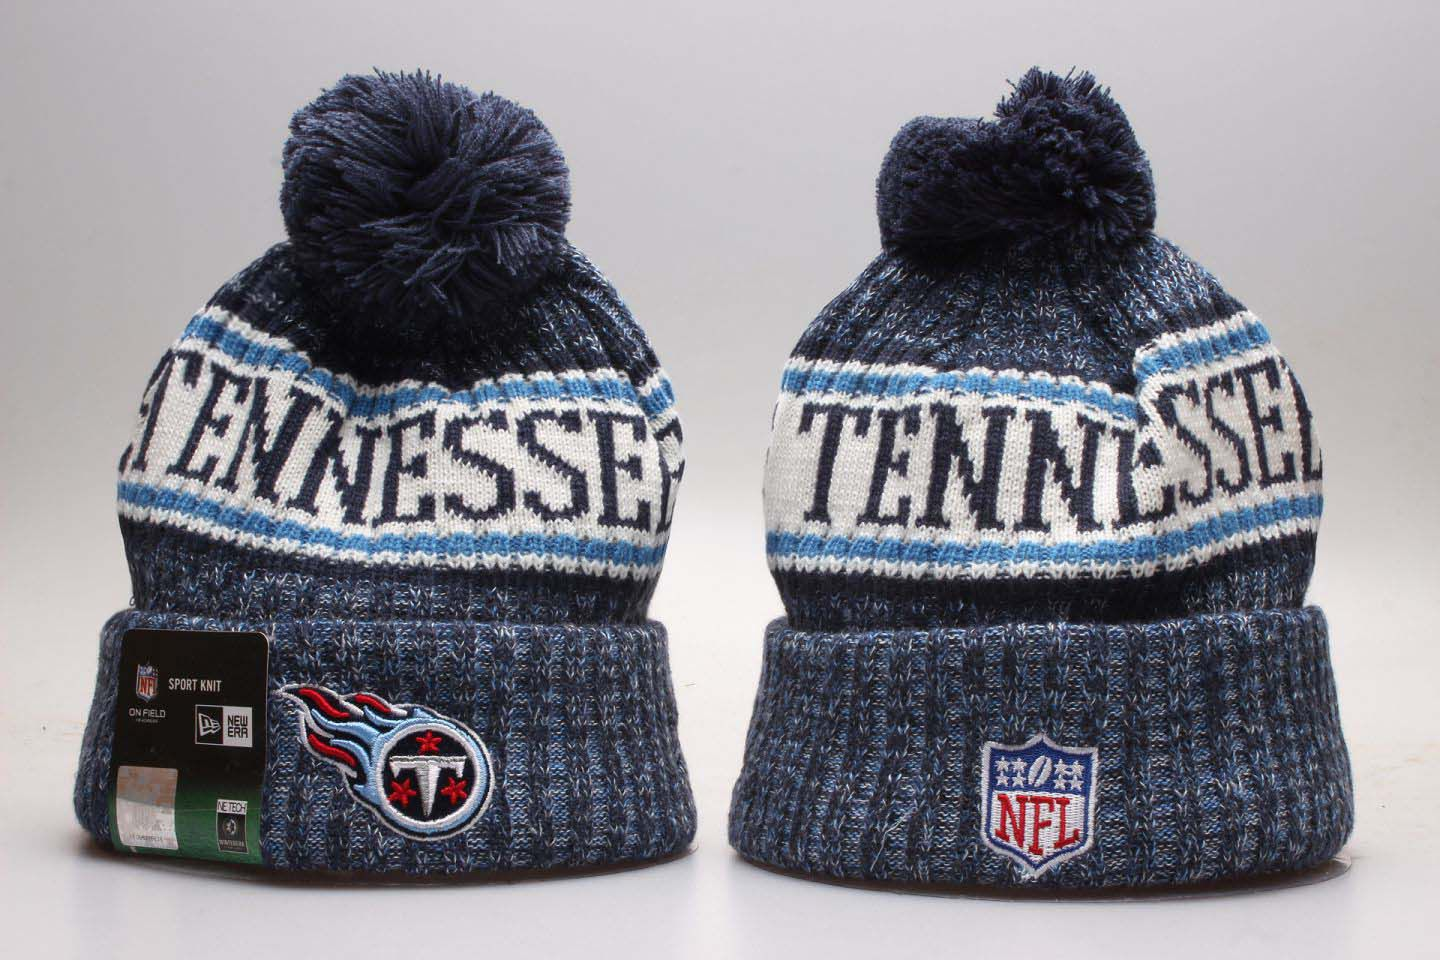 NFL Tennessee Titans Beanie hot hat